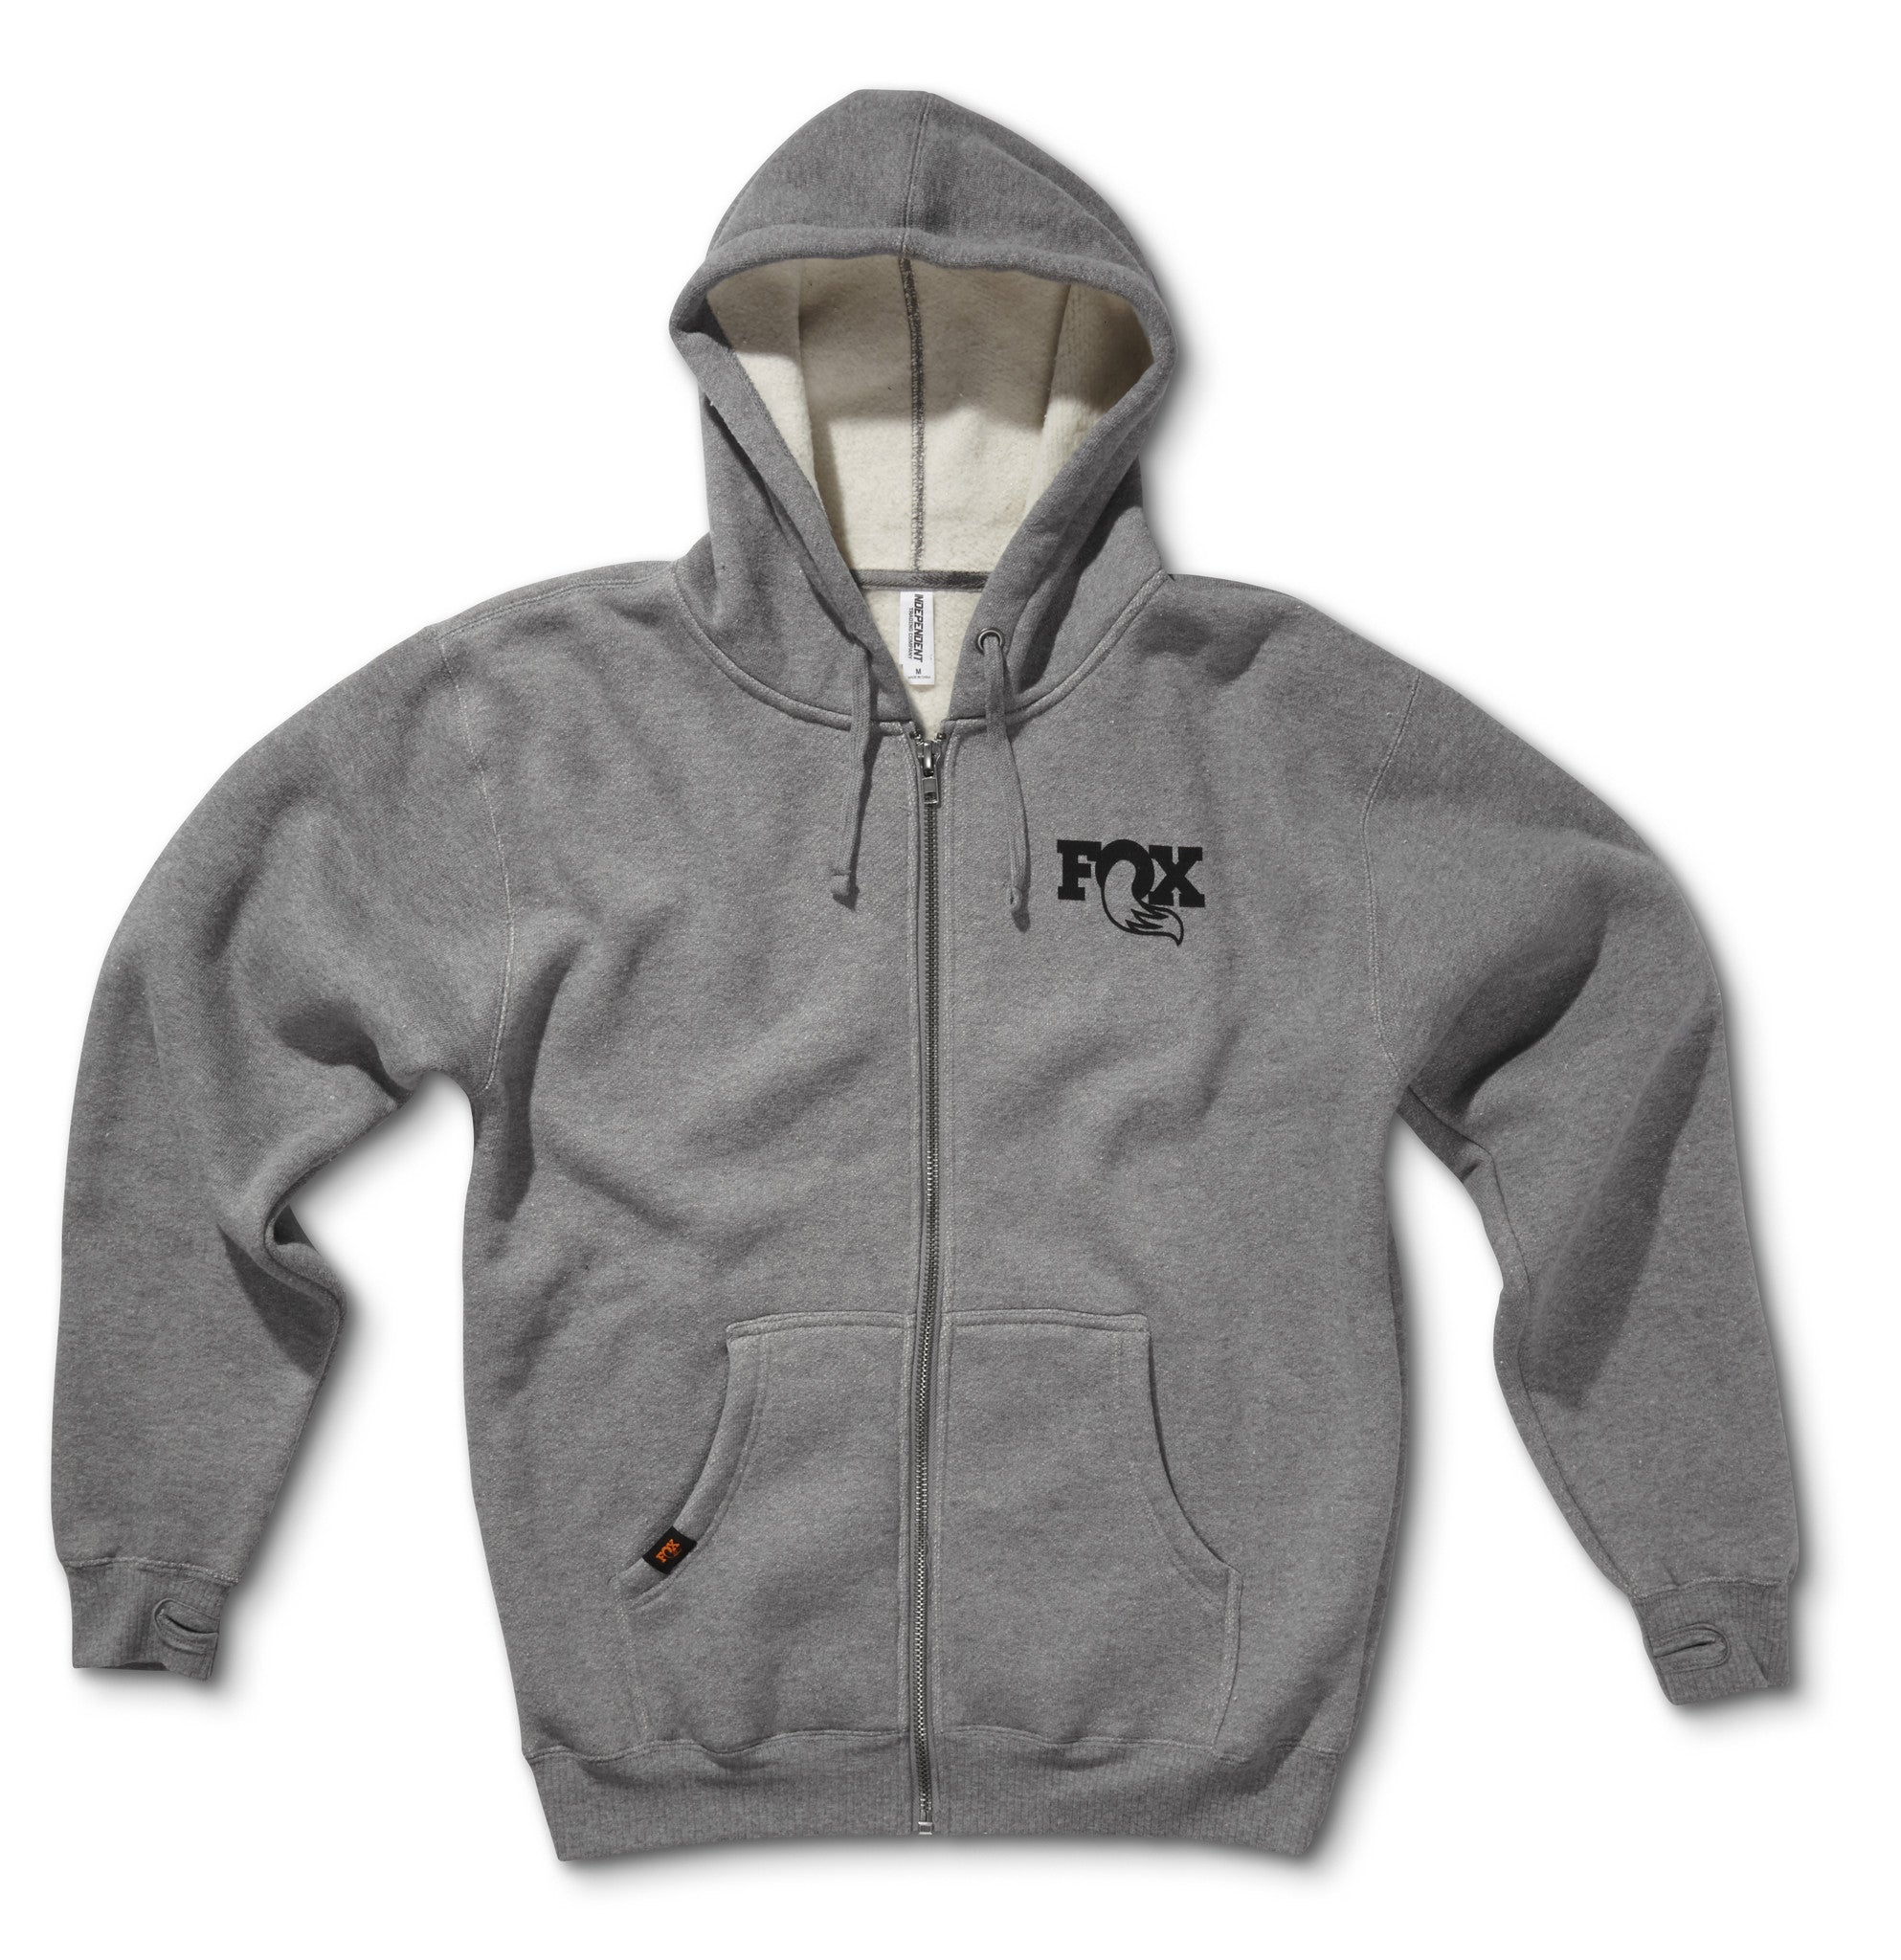 NEW - Heavyweight Hoody 2.0